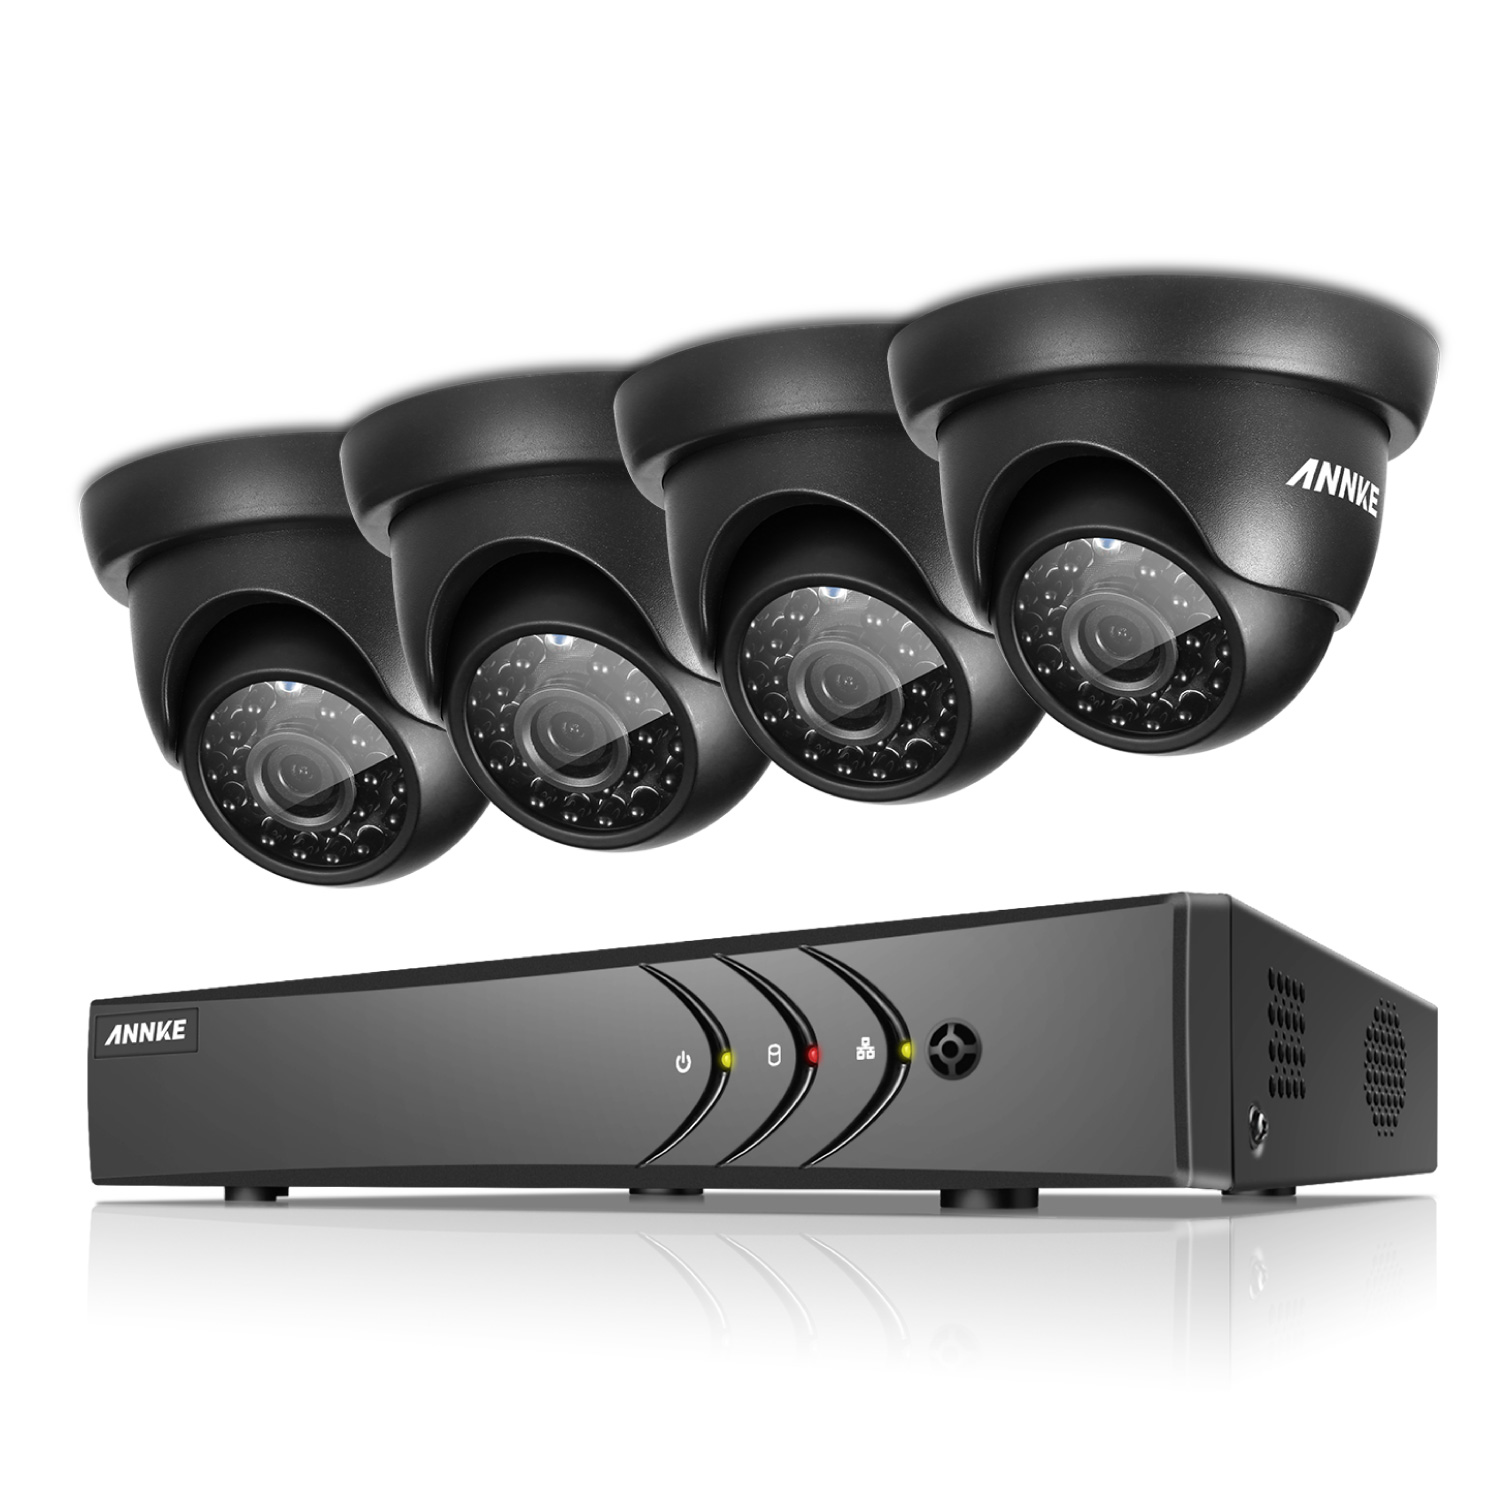 ANNKE 4CH Security System 1080N Video Recorder and 4Pcs Indoor/outdoor Weatherproof Surveillance Cameras-NO Hard Drive Disk